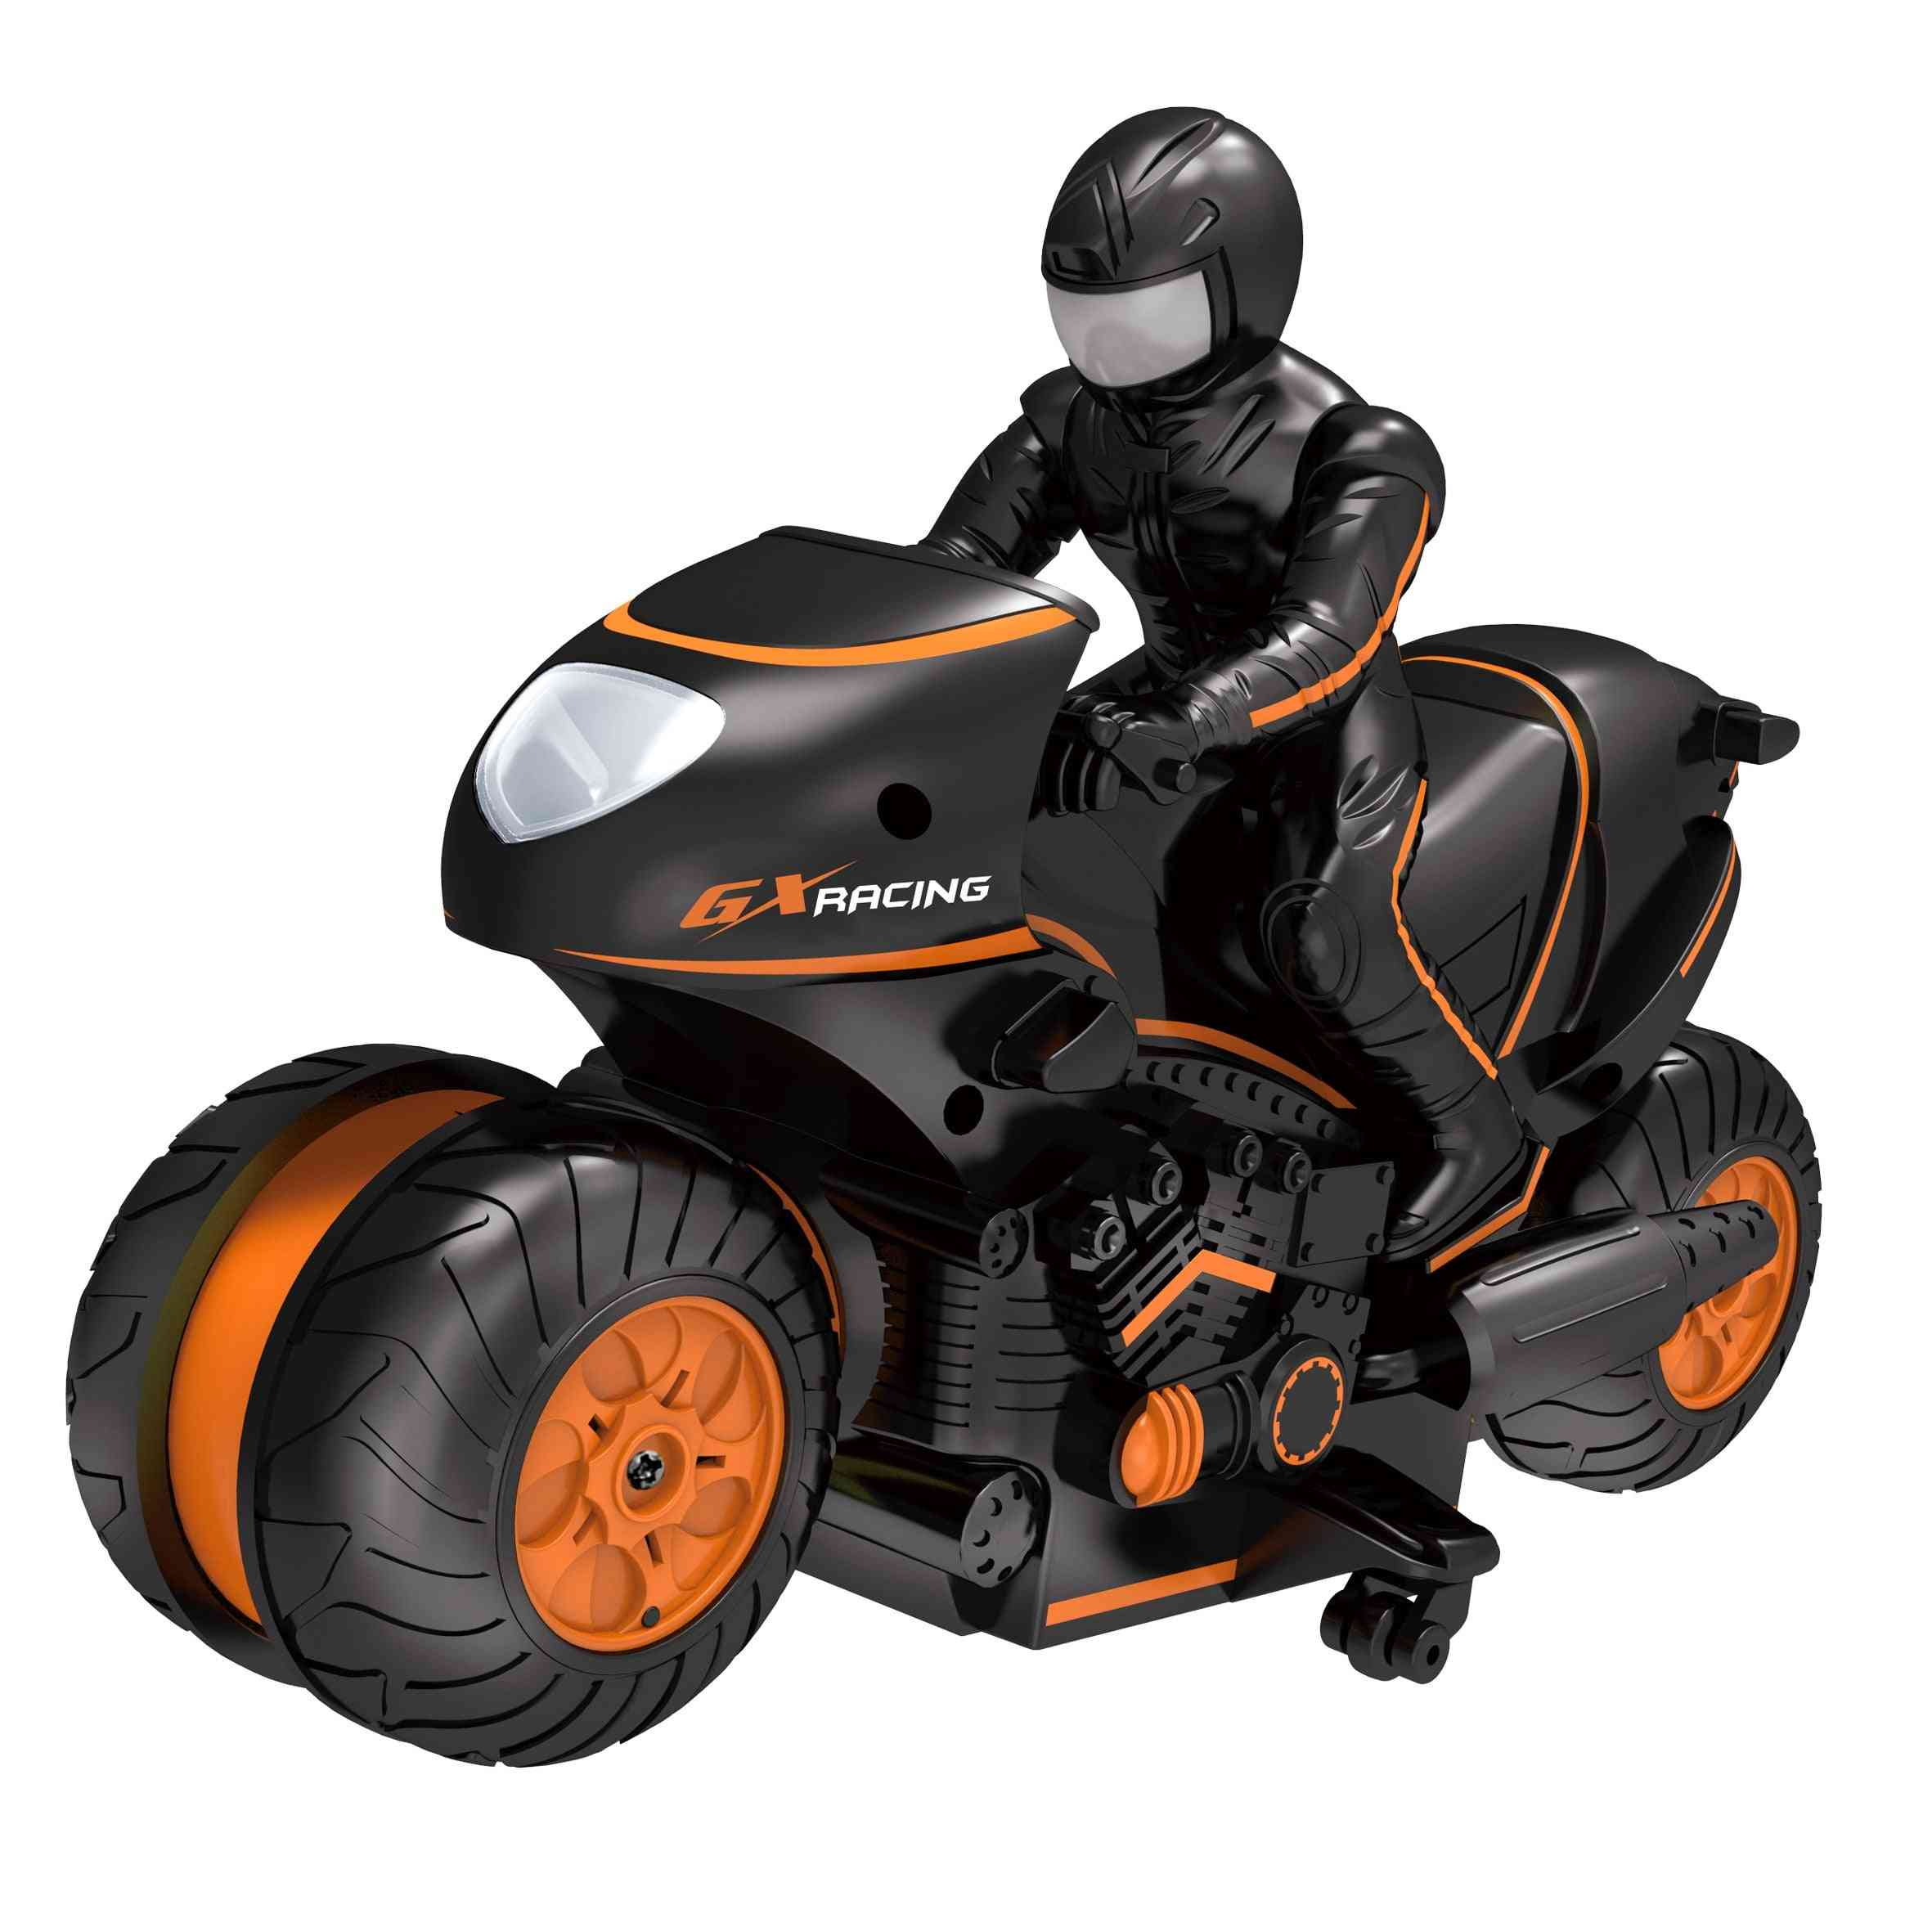 Premote Control Mini Motorcycle-2.4 Ghz  High Speed For